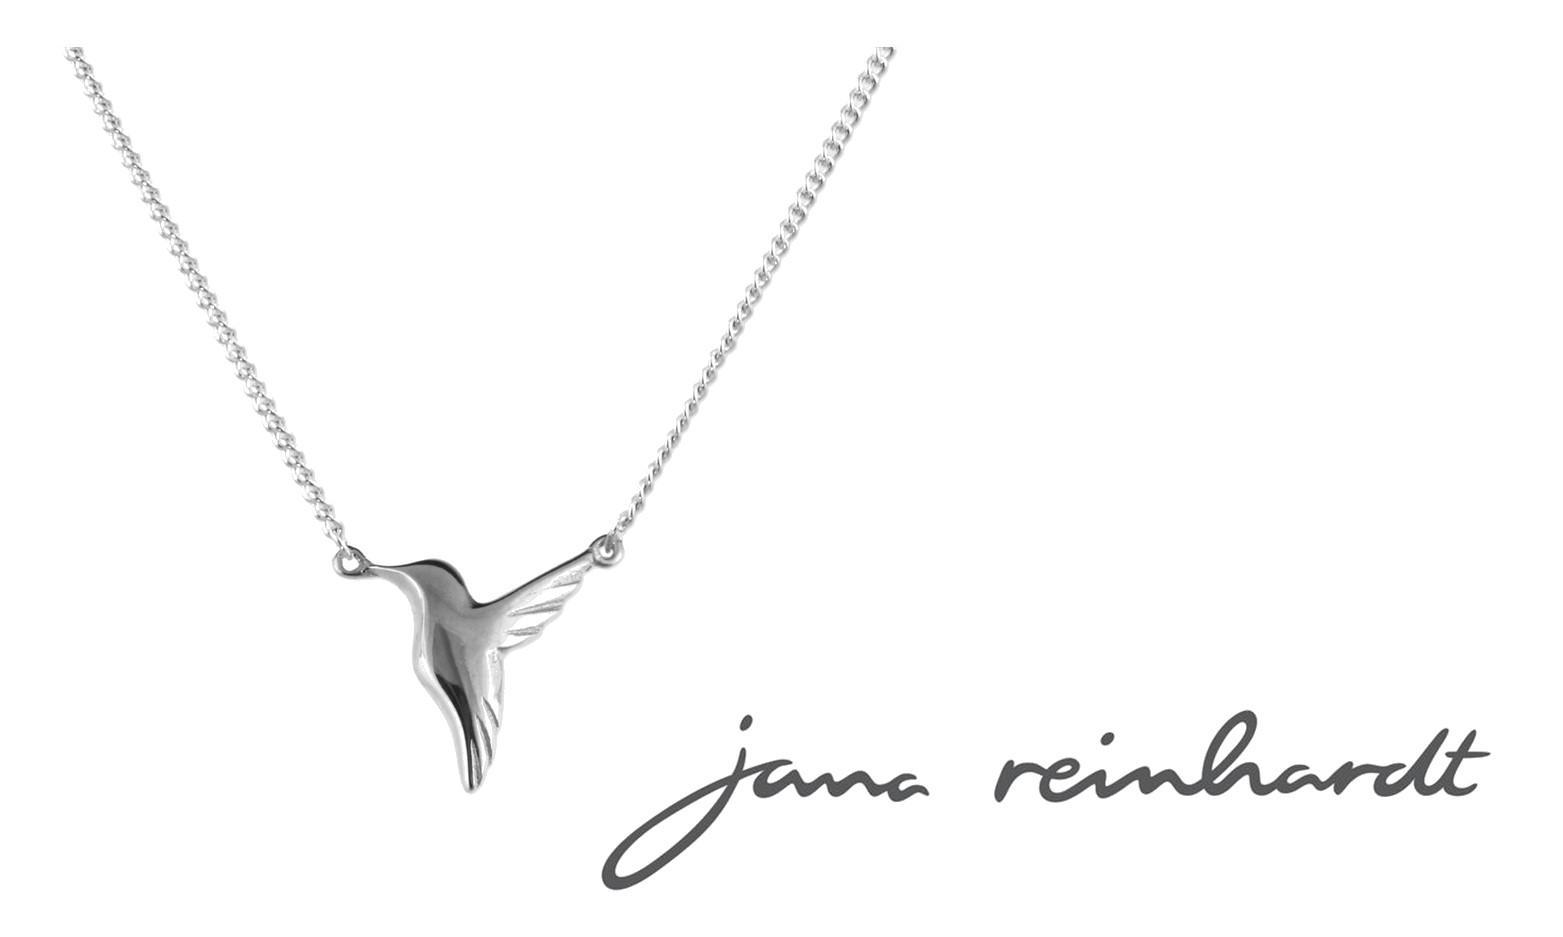 COMPETITION WIN a Jana Reinhardt Hummingbirds Necklace